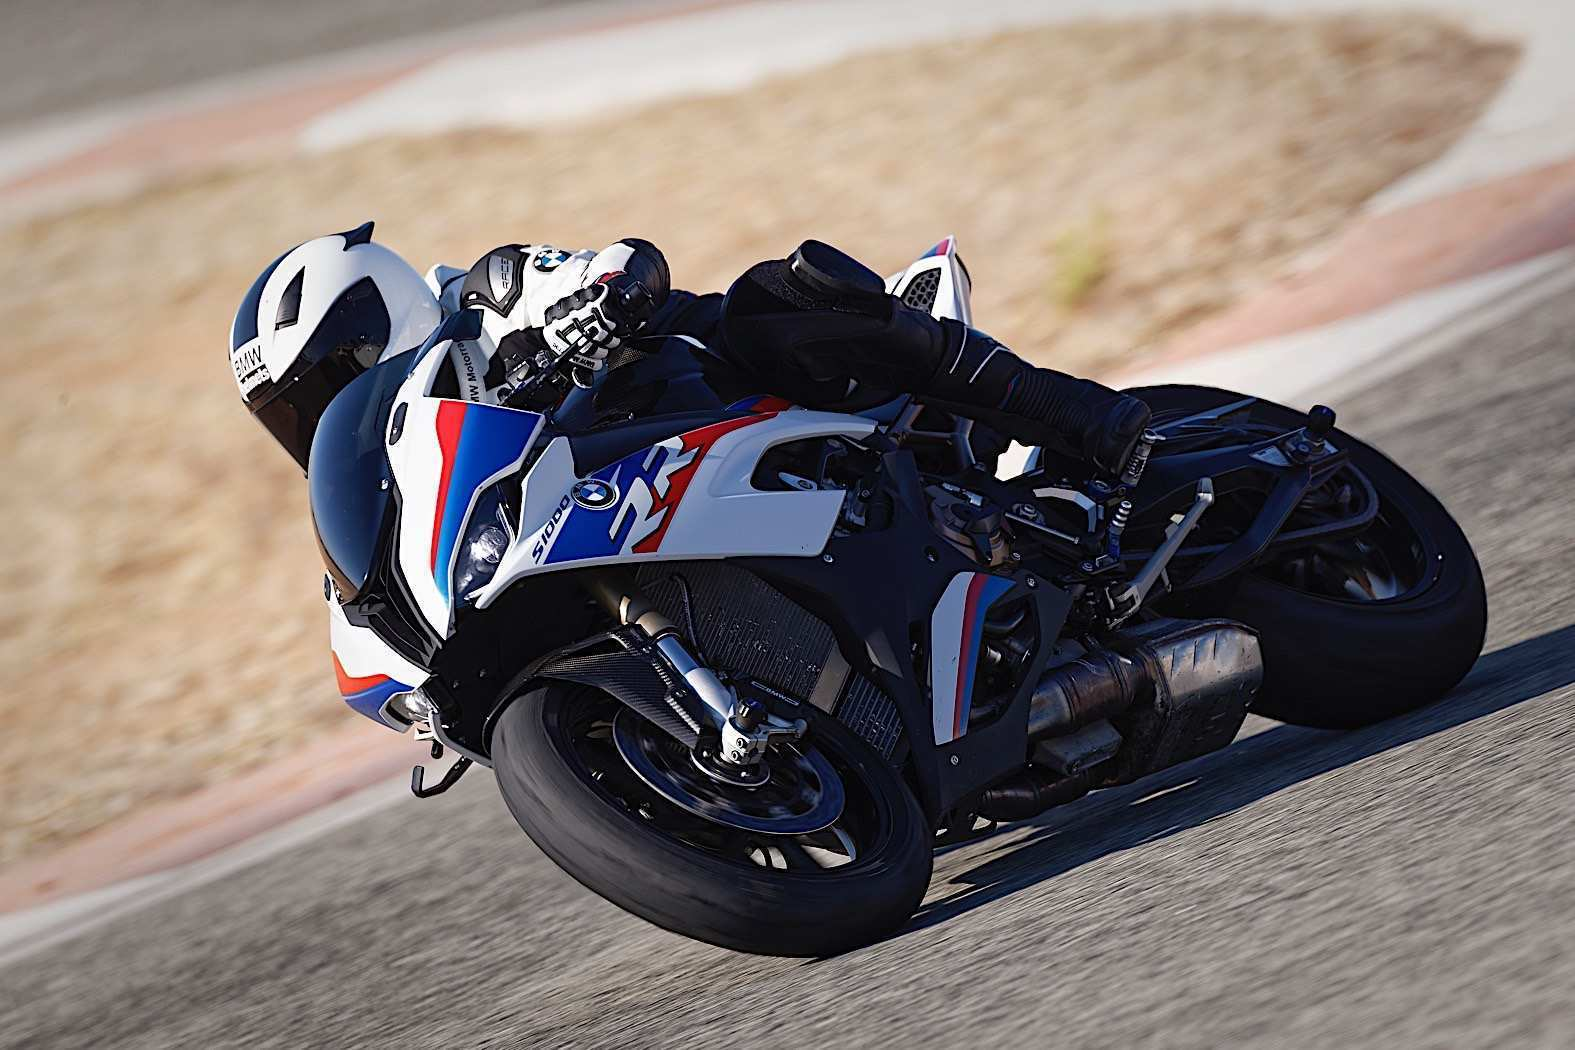 73 New BMW Rr 2020 Research New